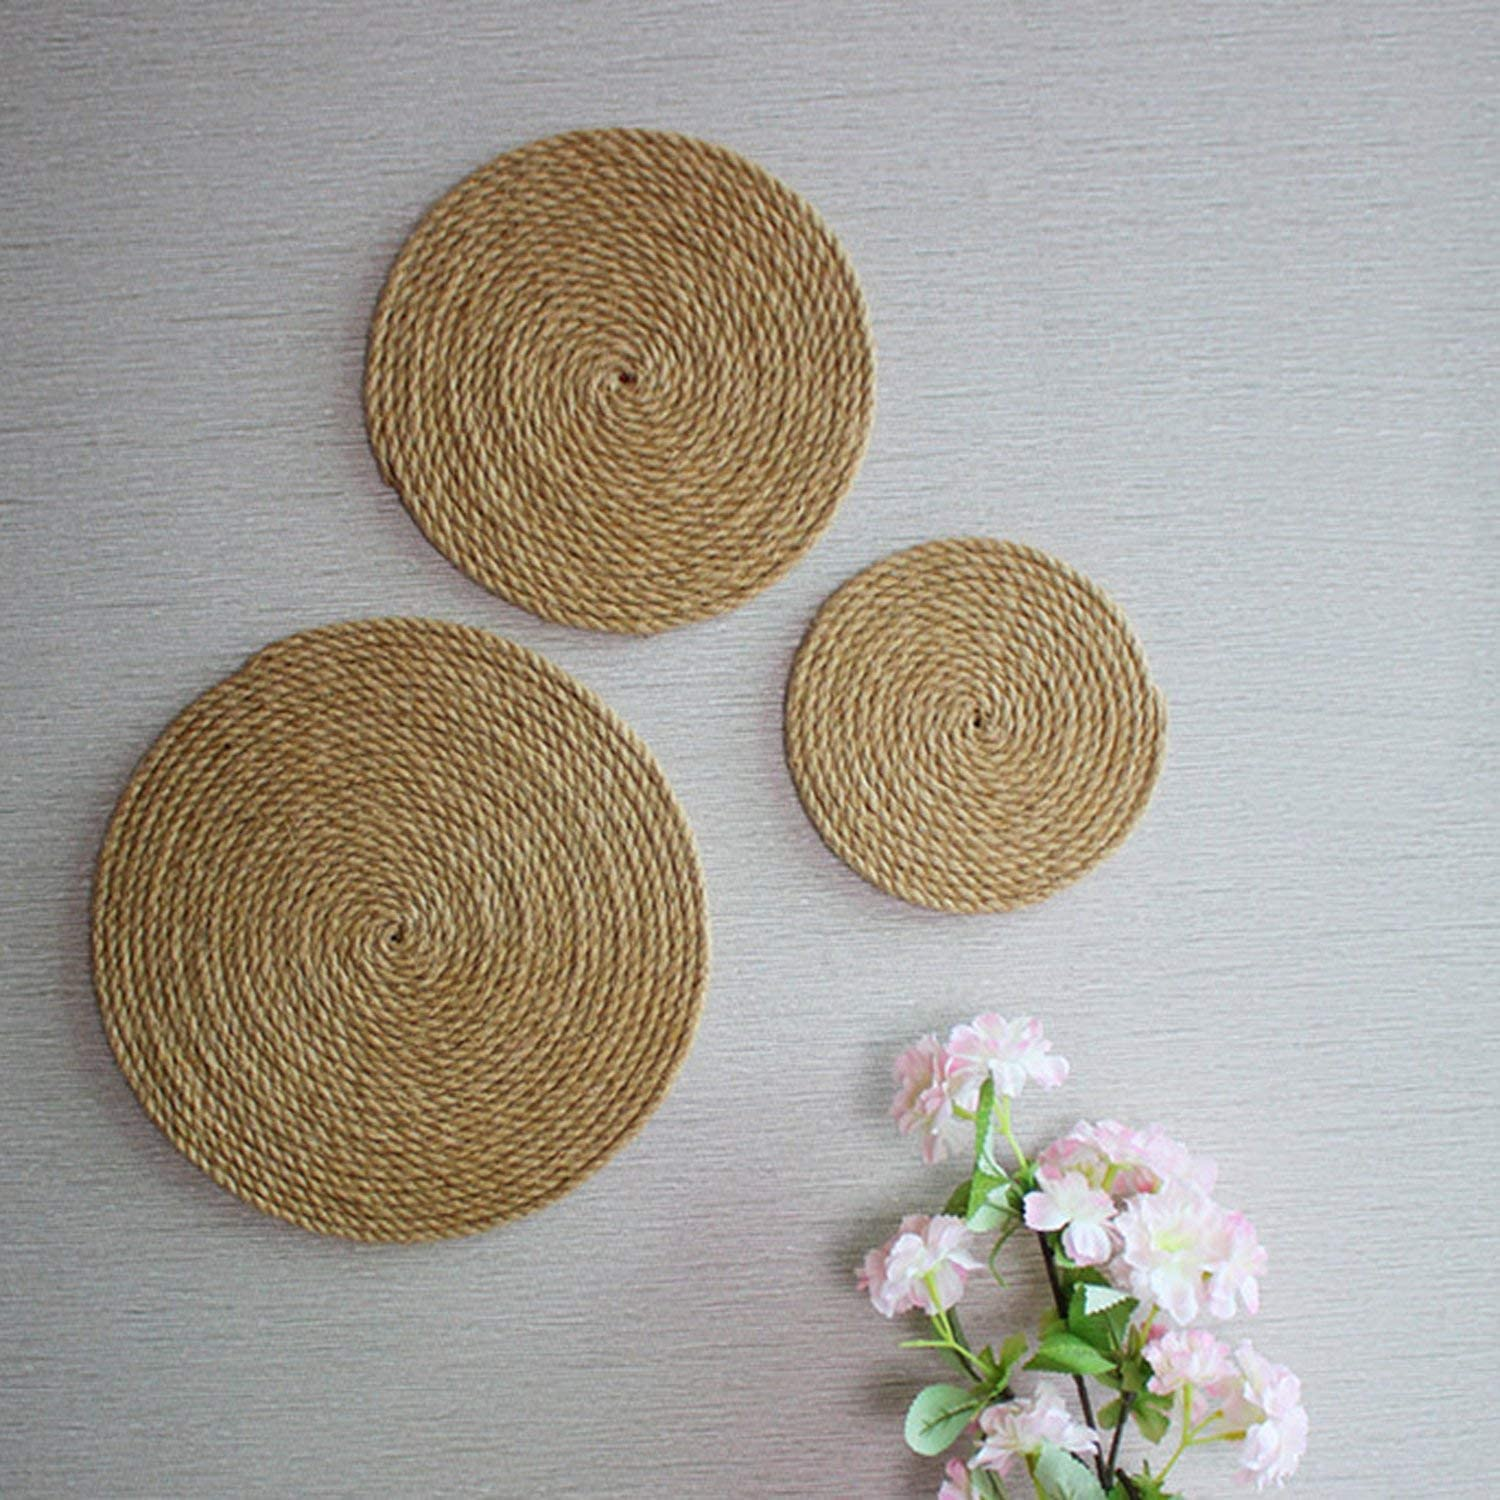 Office and Hotel Primitive Country Style D/écor CVHOMEDECO 12//10//8 Inch Indoor DIY Wall Art Sculptures for Home Rustic Hemp Rope Round Disc for Wall Hanging Set of 3